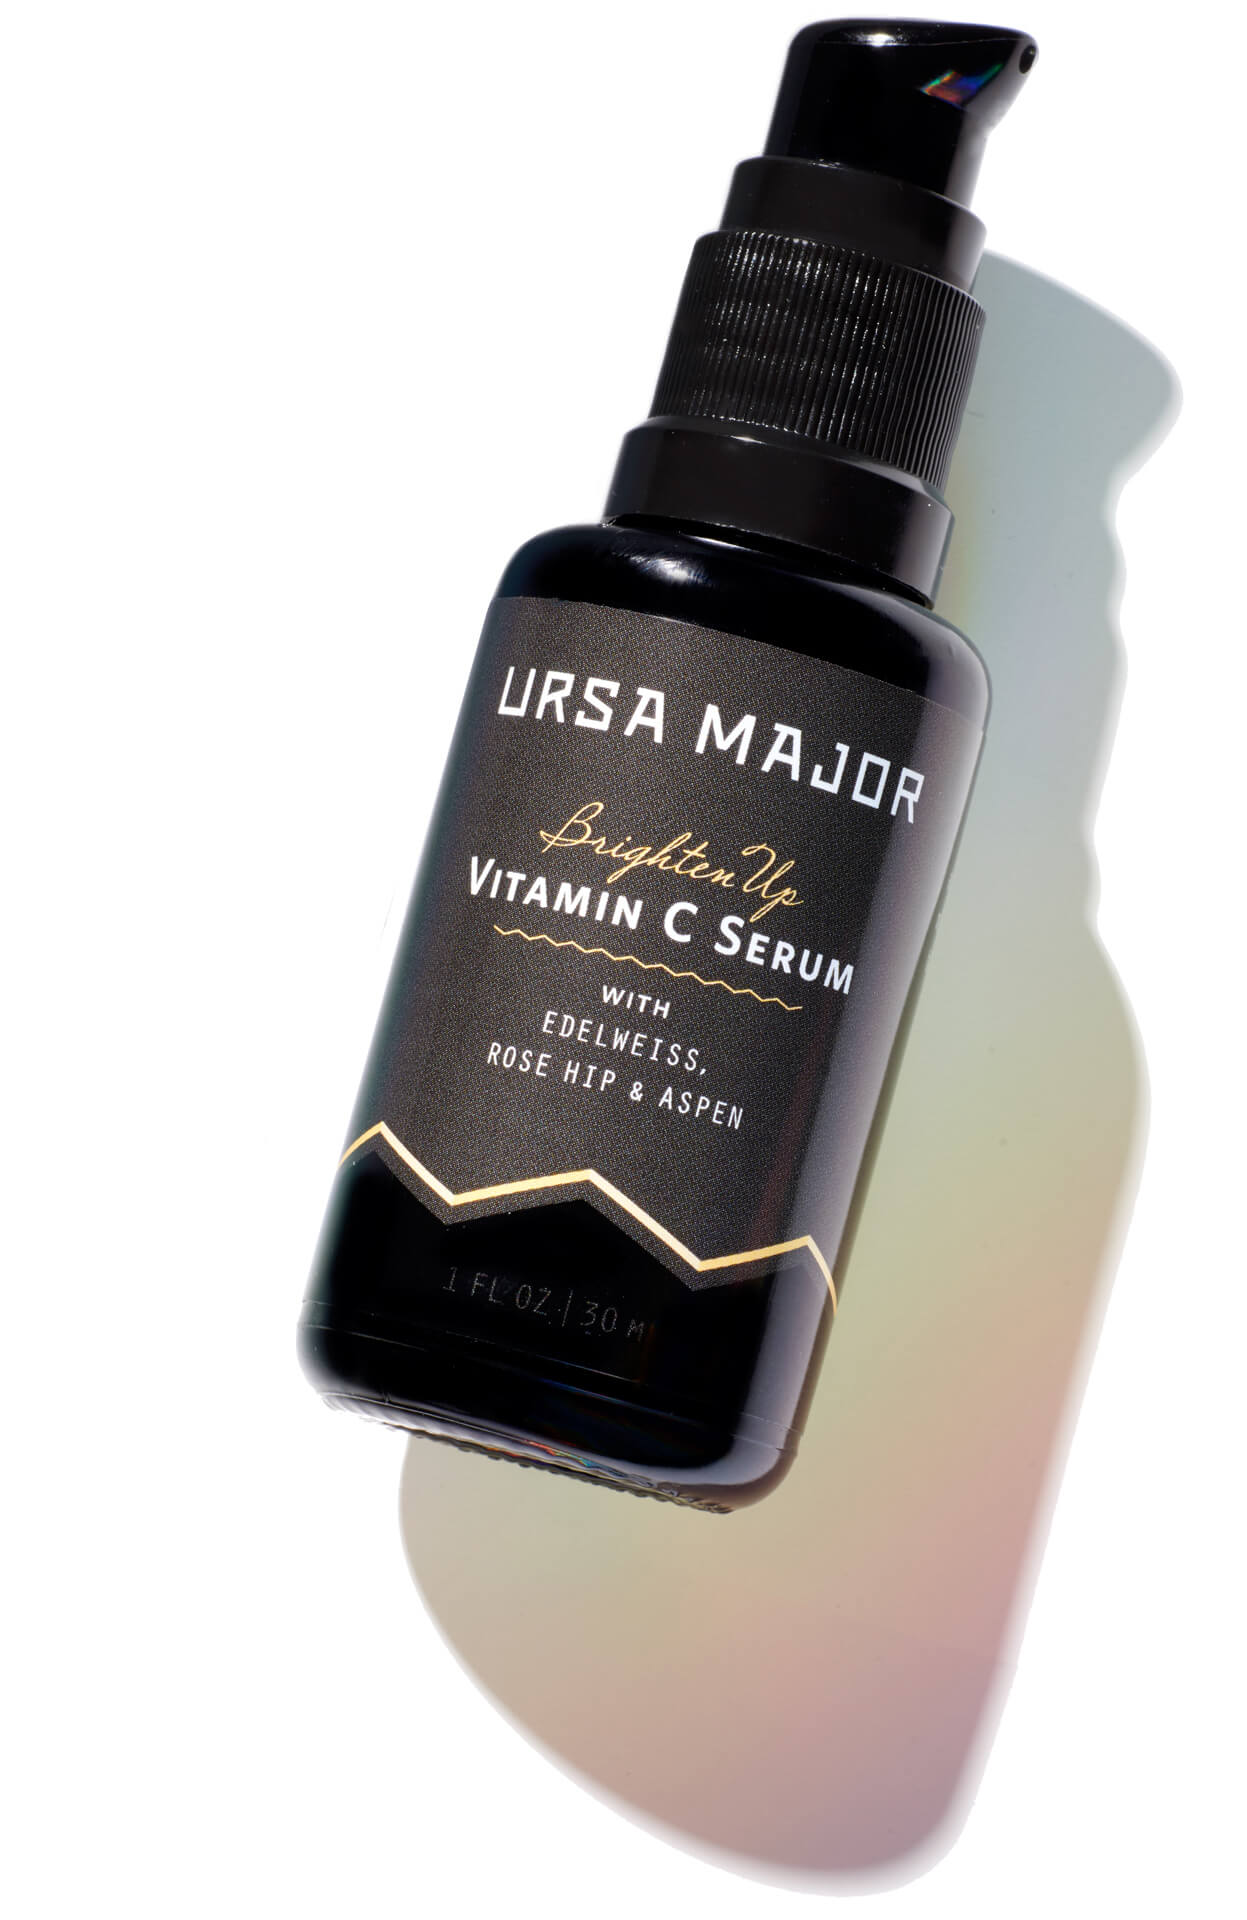 Ursa Major Vitamin C Serum